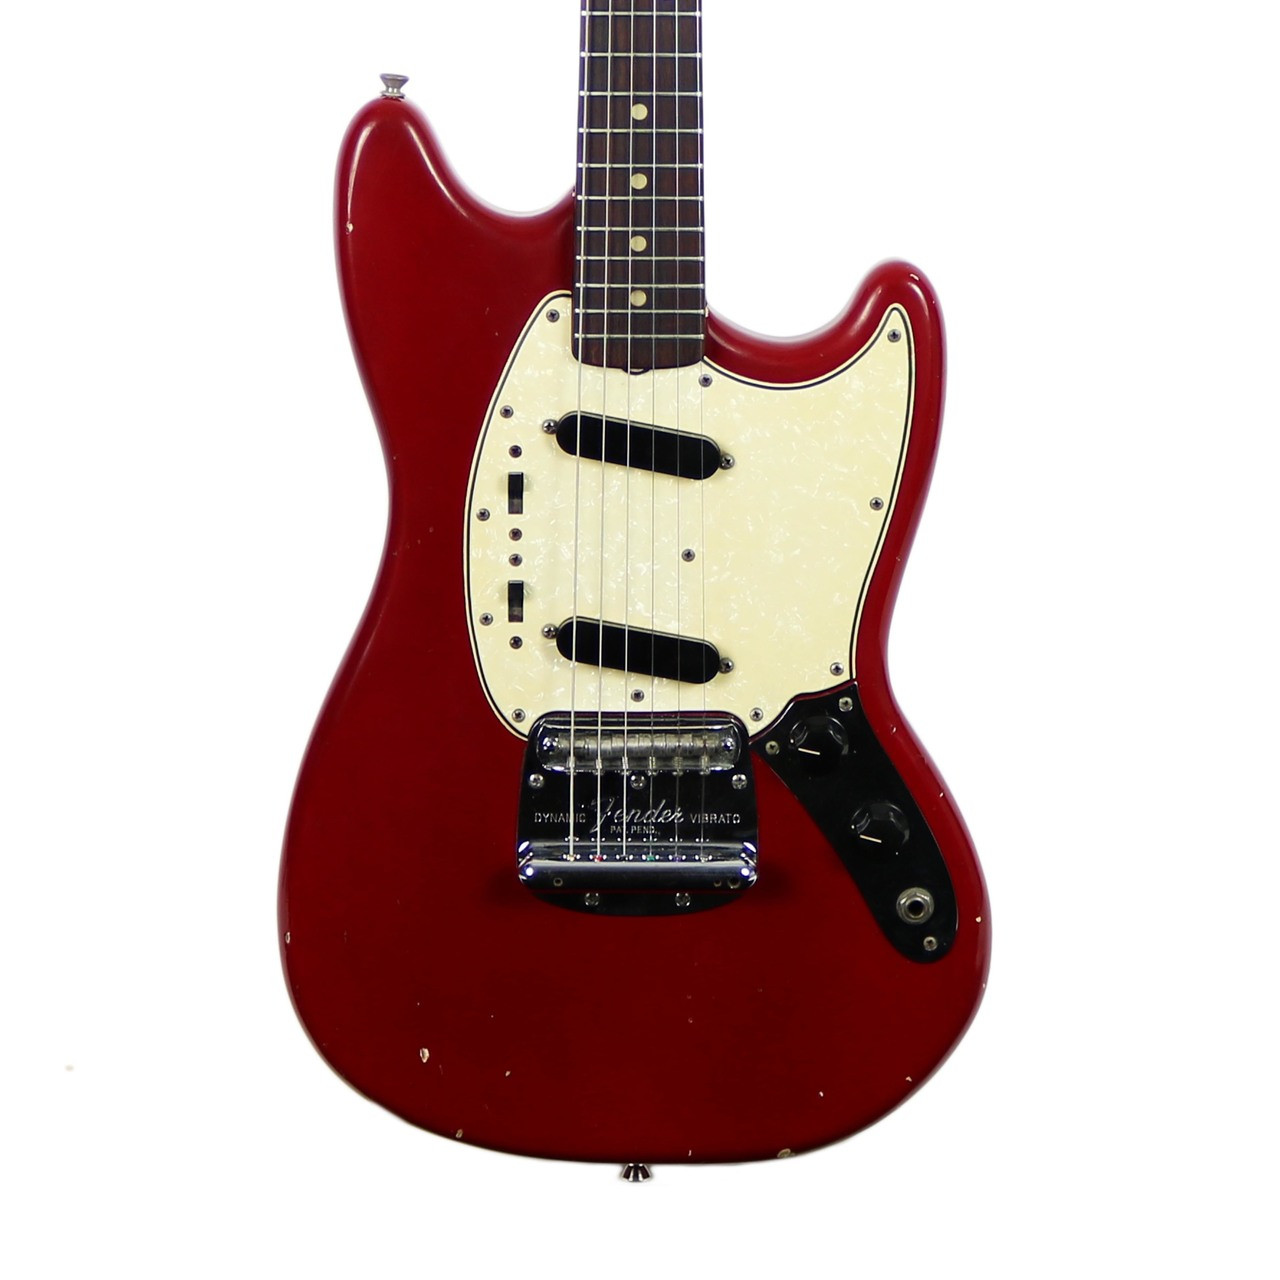 vintage 1965 fender mustang electric guitar red cream city music. Black Bedroom Furniture Sets. Home Design Ideas